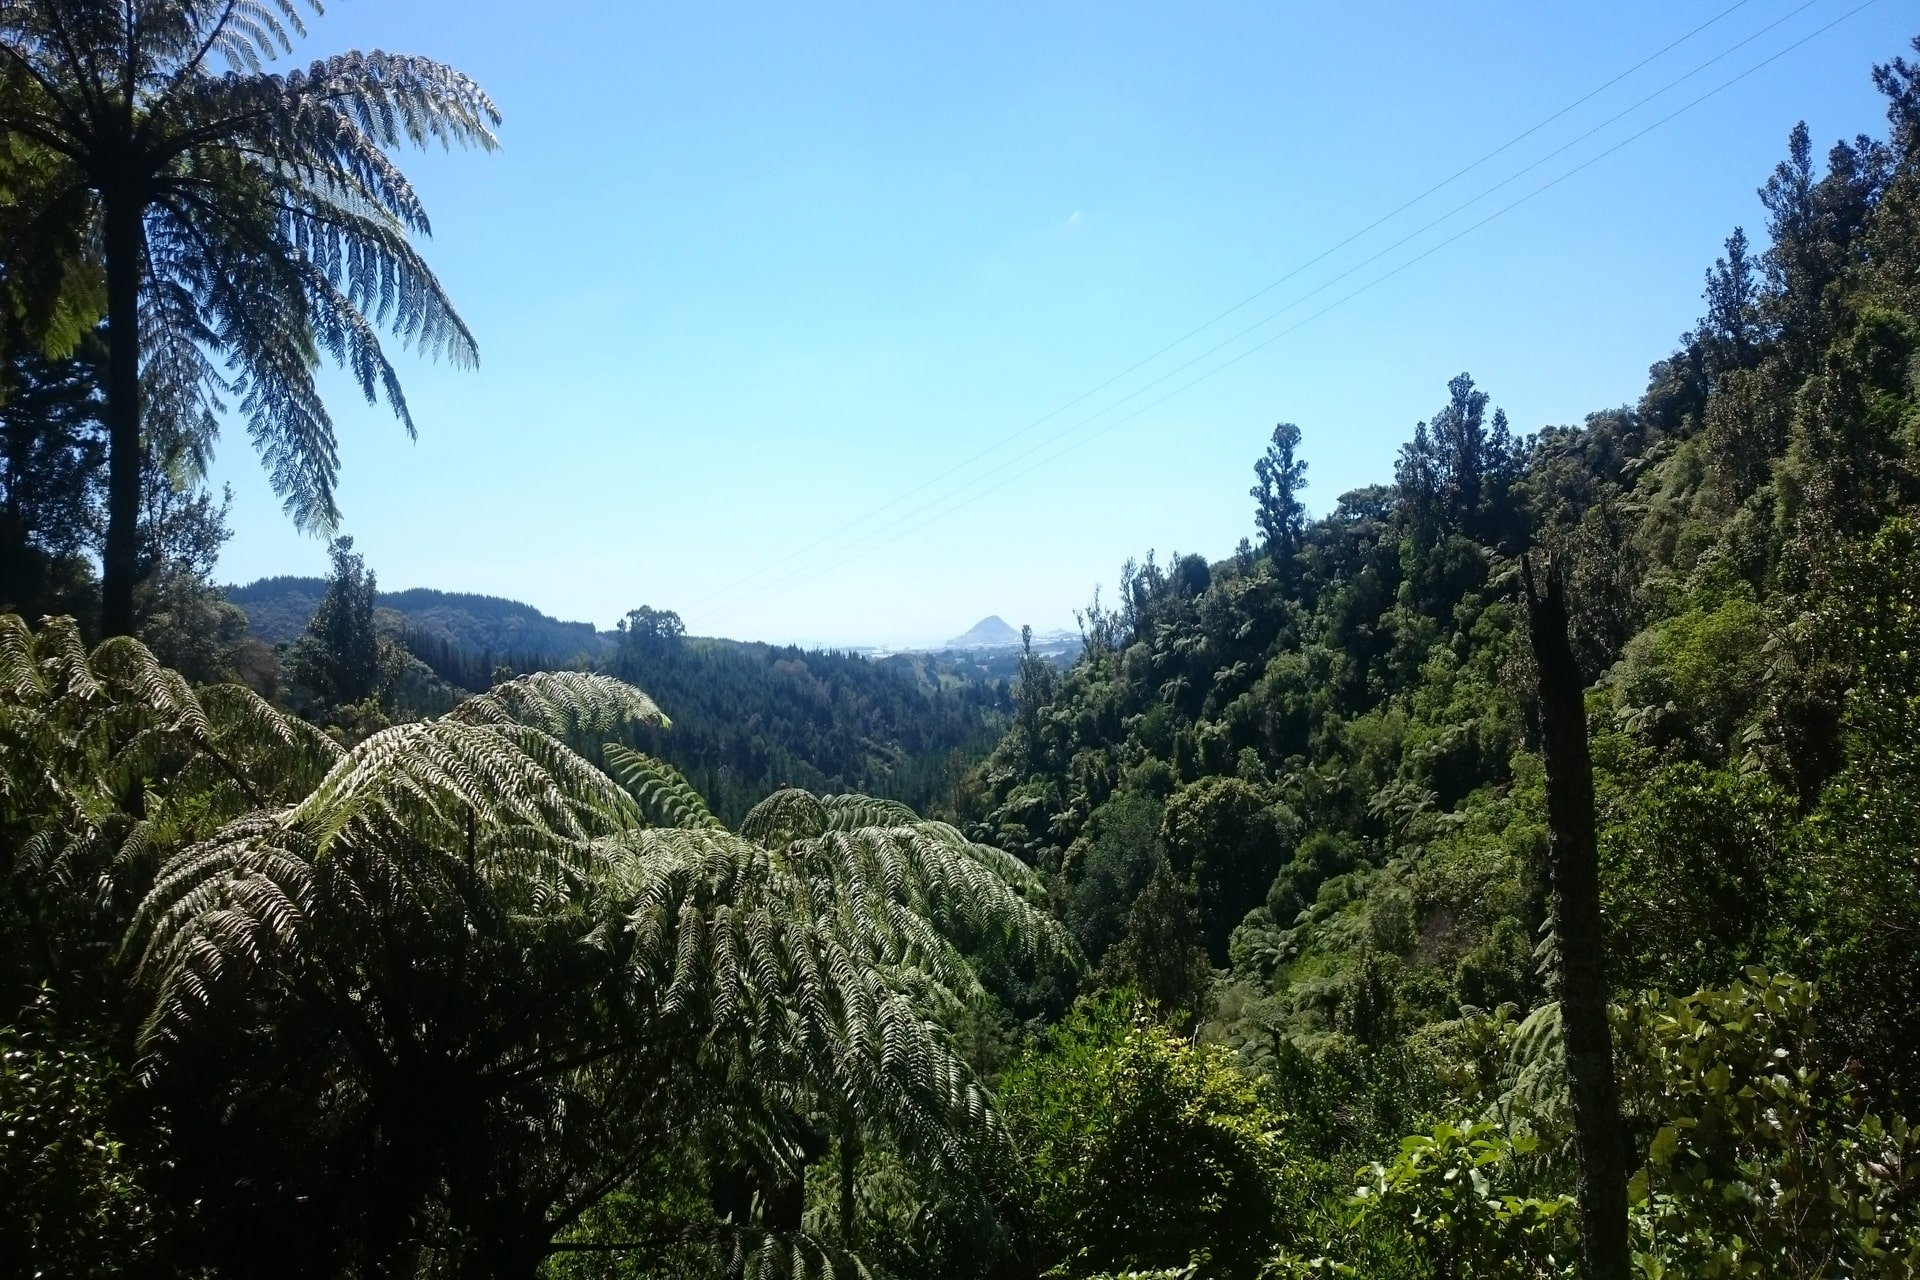 kaiate-falls-view-from-carpark